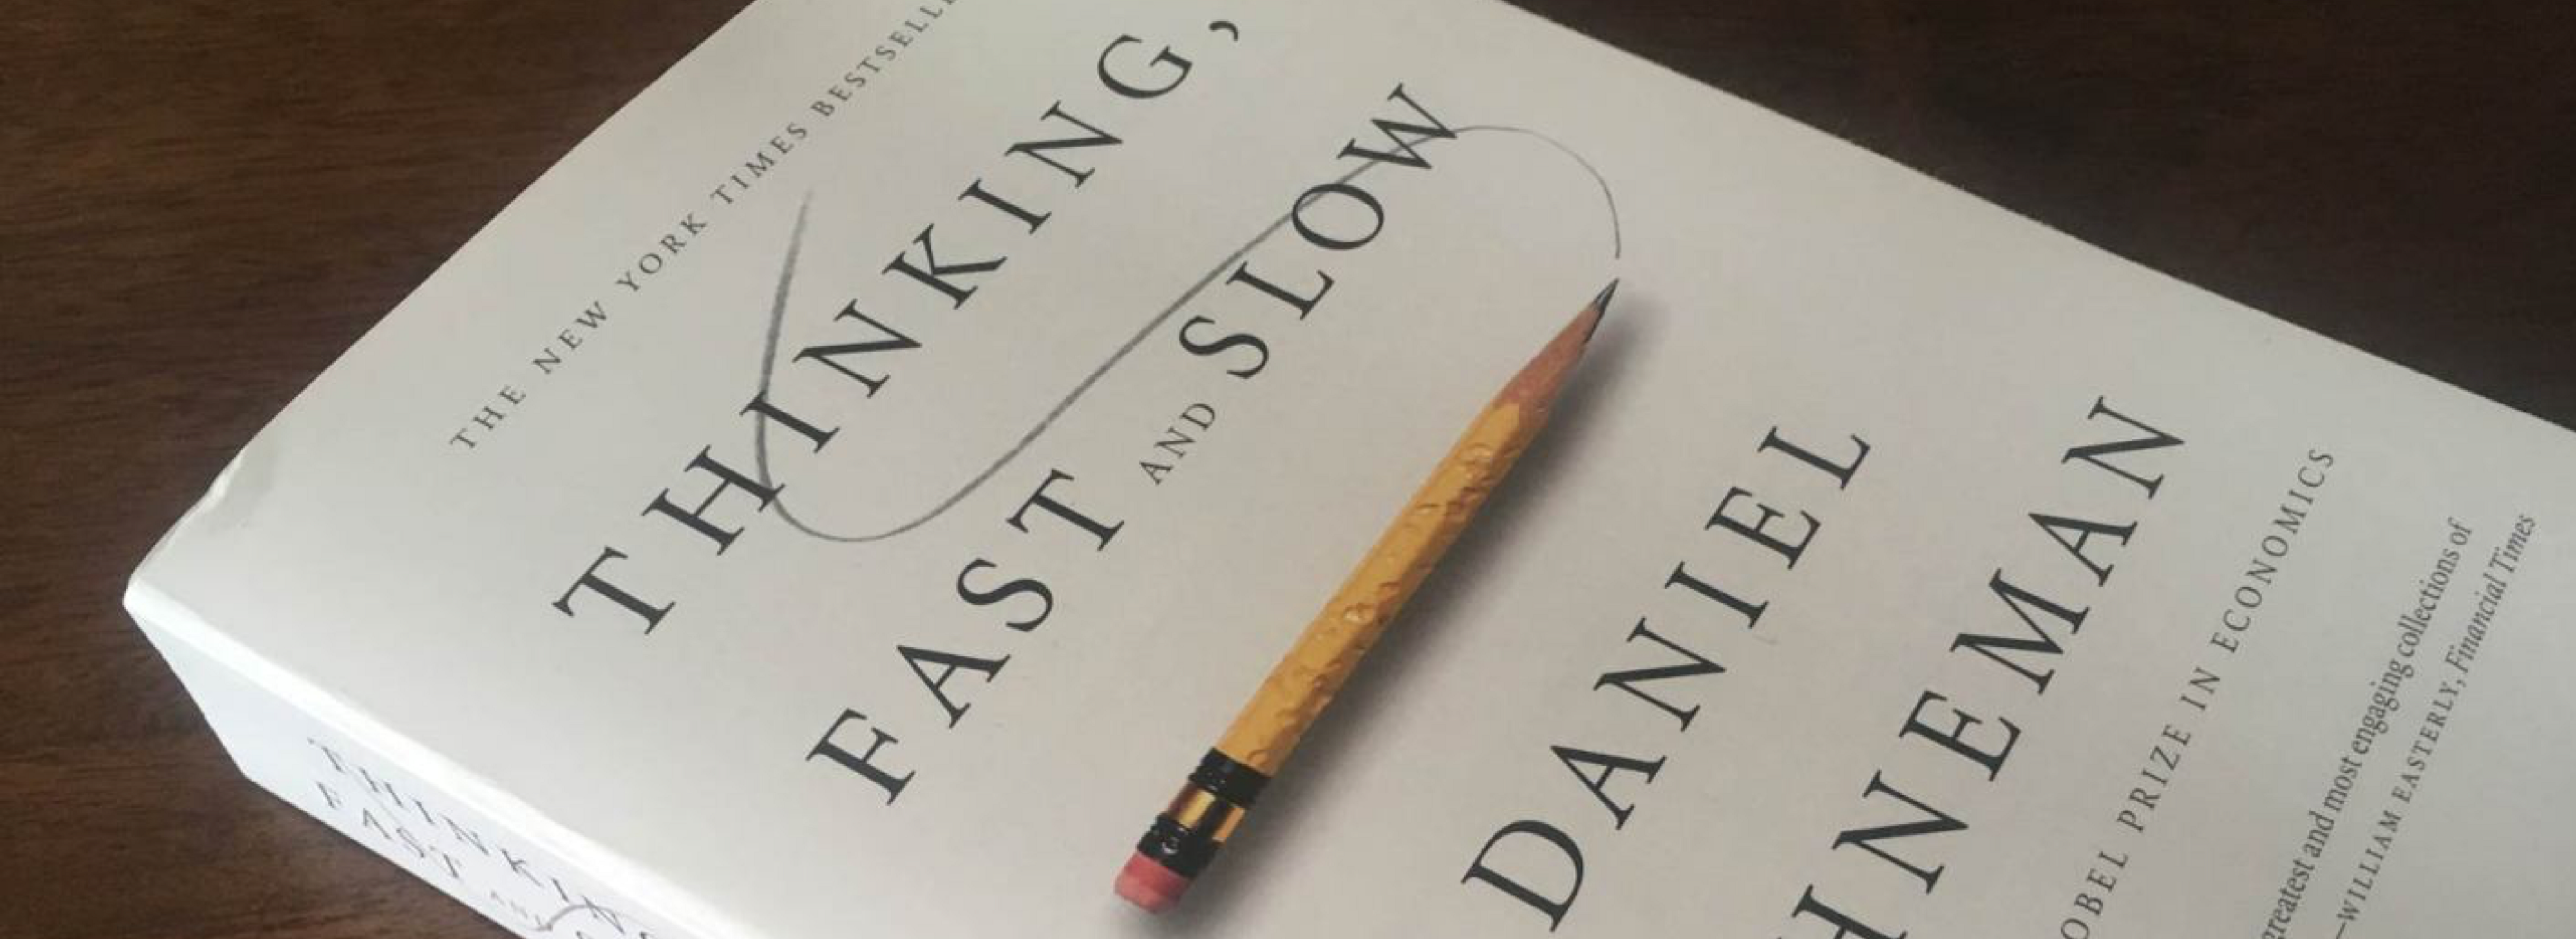 Every Chapter of Thinking Fast, and Slow in 7 Minutes